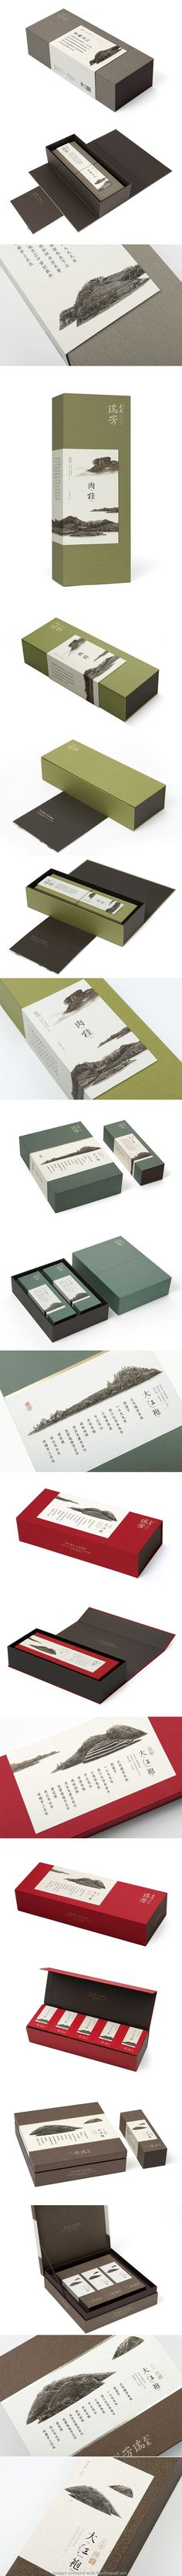 wuyi rueifang tea packaging. design credit, one & one.